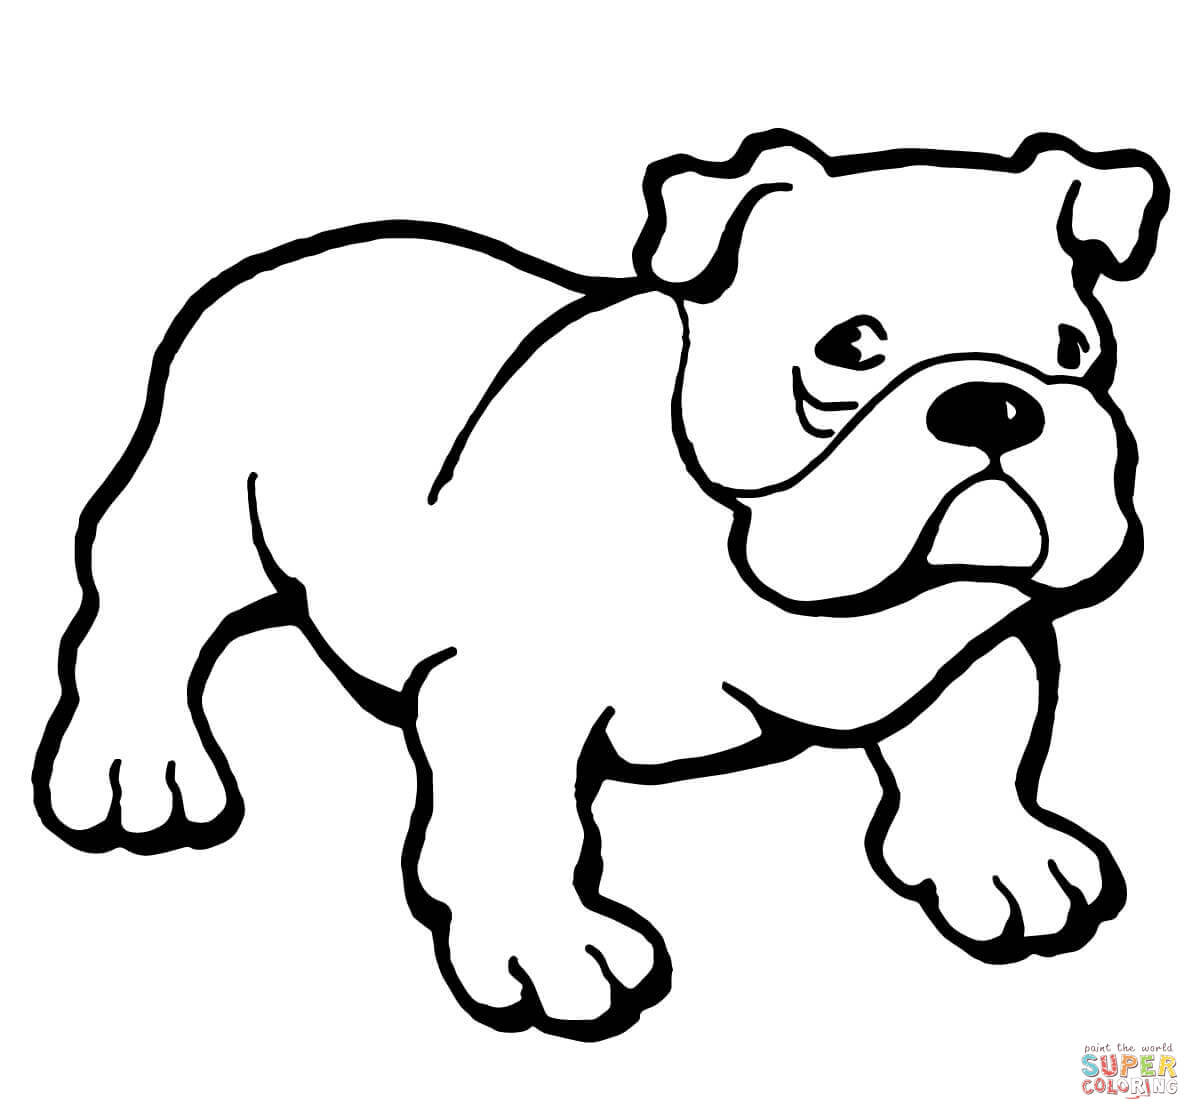 Super Easy Viking Foot Ball Super Bull Coloring Pages For Boys  Bulldog coloring page